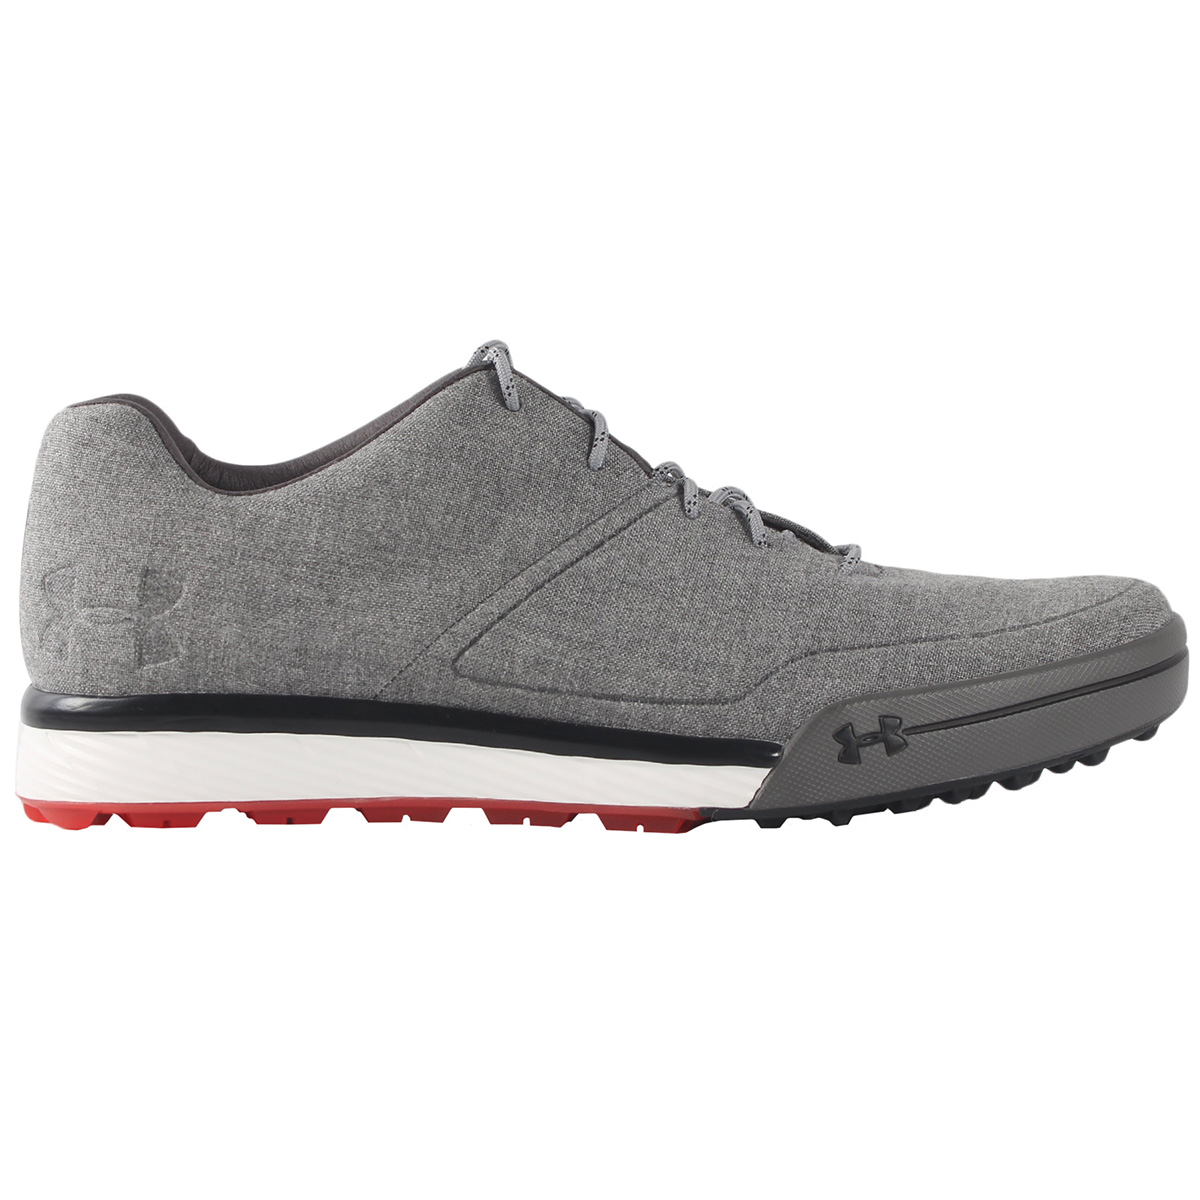 under armor golf shoes